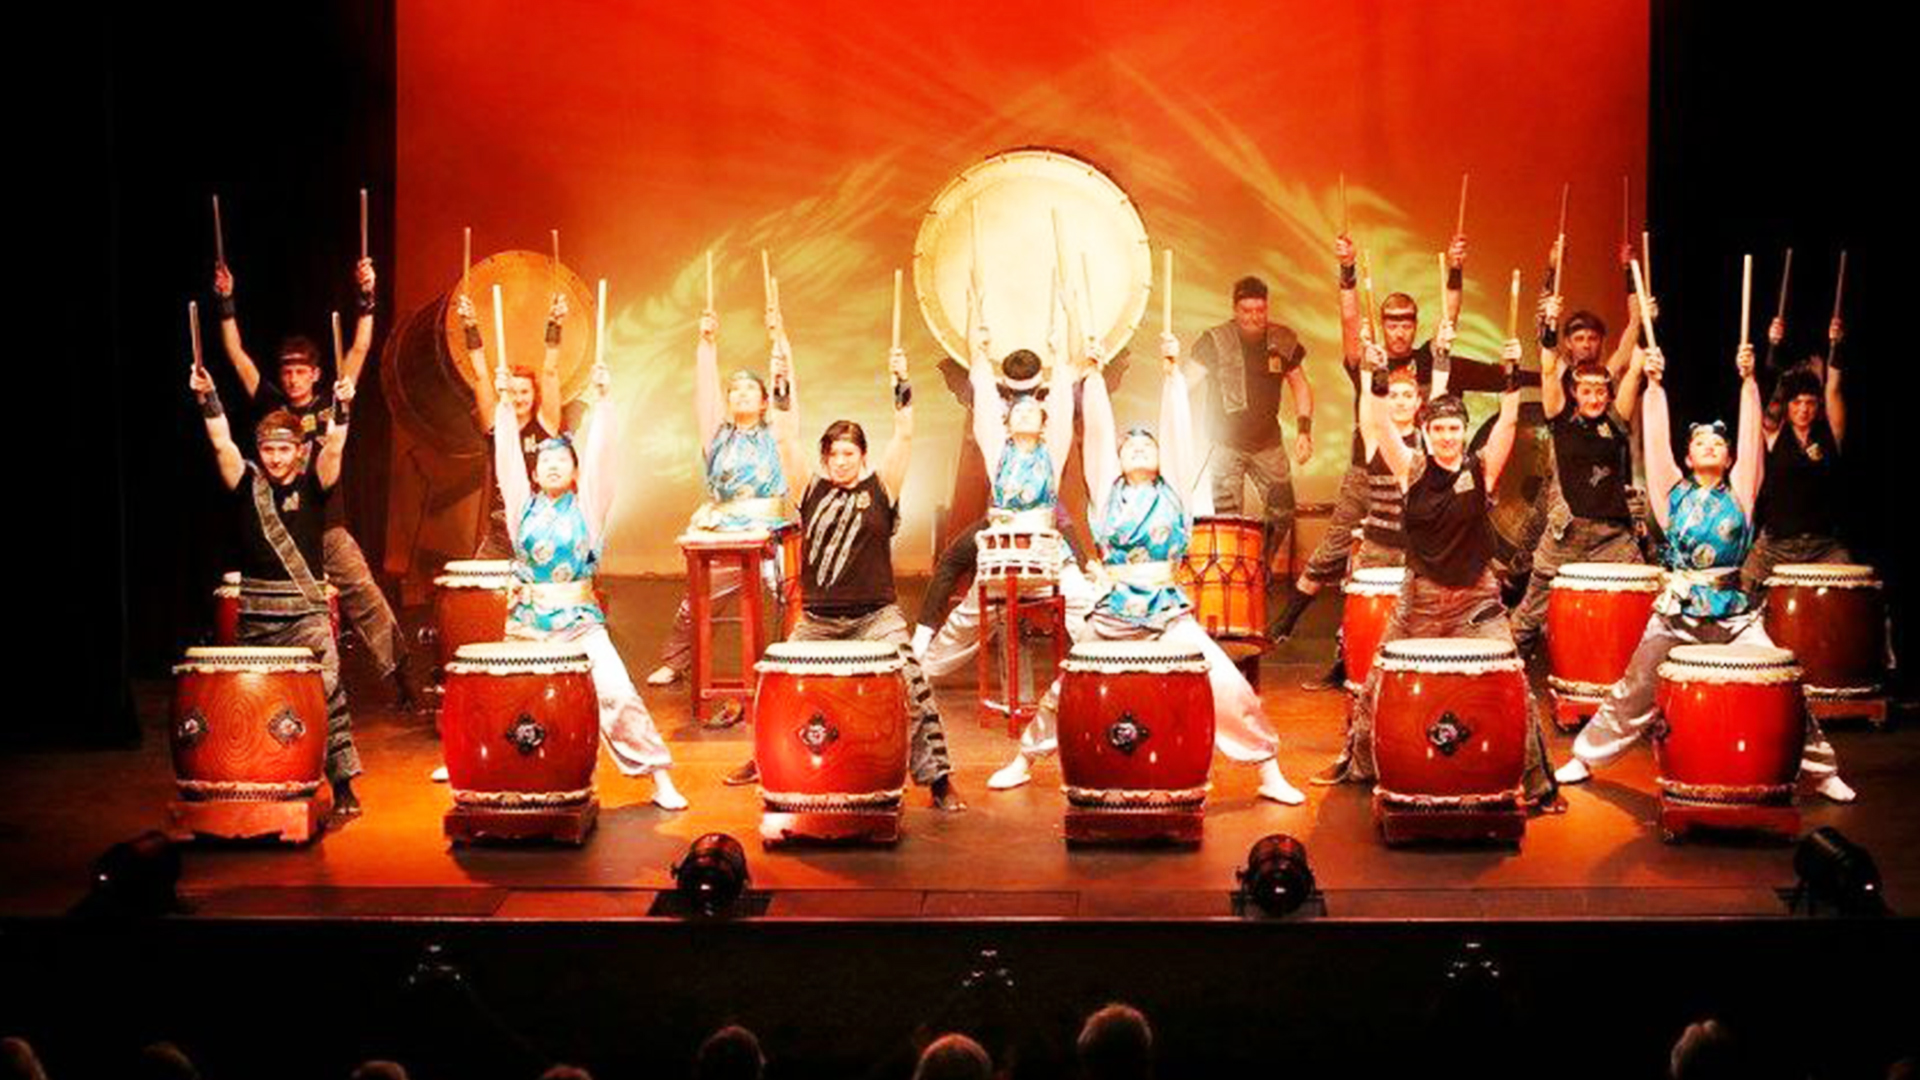 Be entertained by a rhythmic medley of traditional and modern Japanese music. Using a broad range of Japanese percussion instruments, the performers ensemble taiko drumming, composed by members of the group and commissioned composers. The work is contemporary, often collaborations with other performing art mediums and draws influence from western art music, traditional music and sound design.